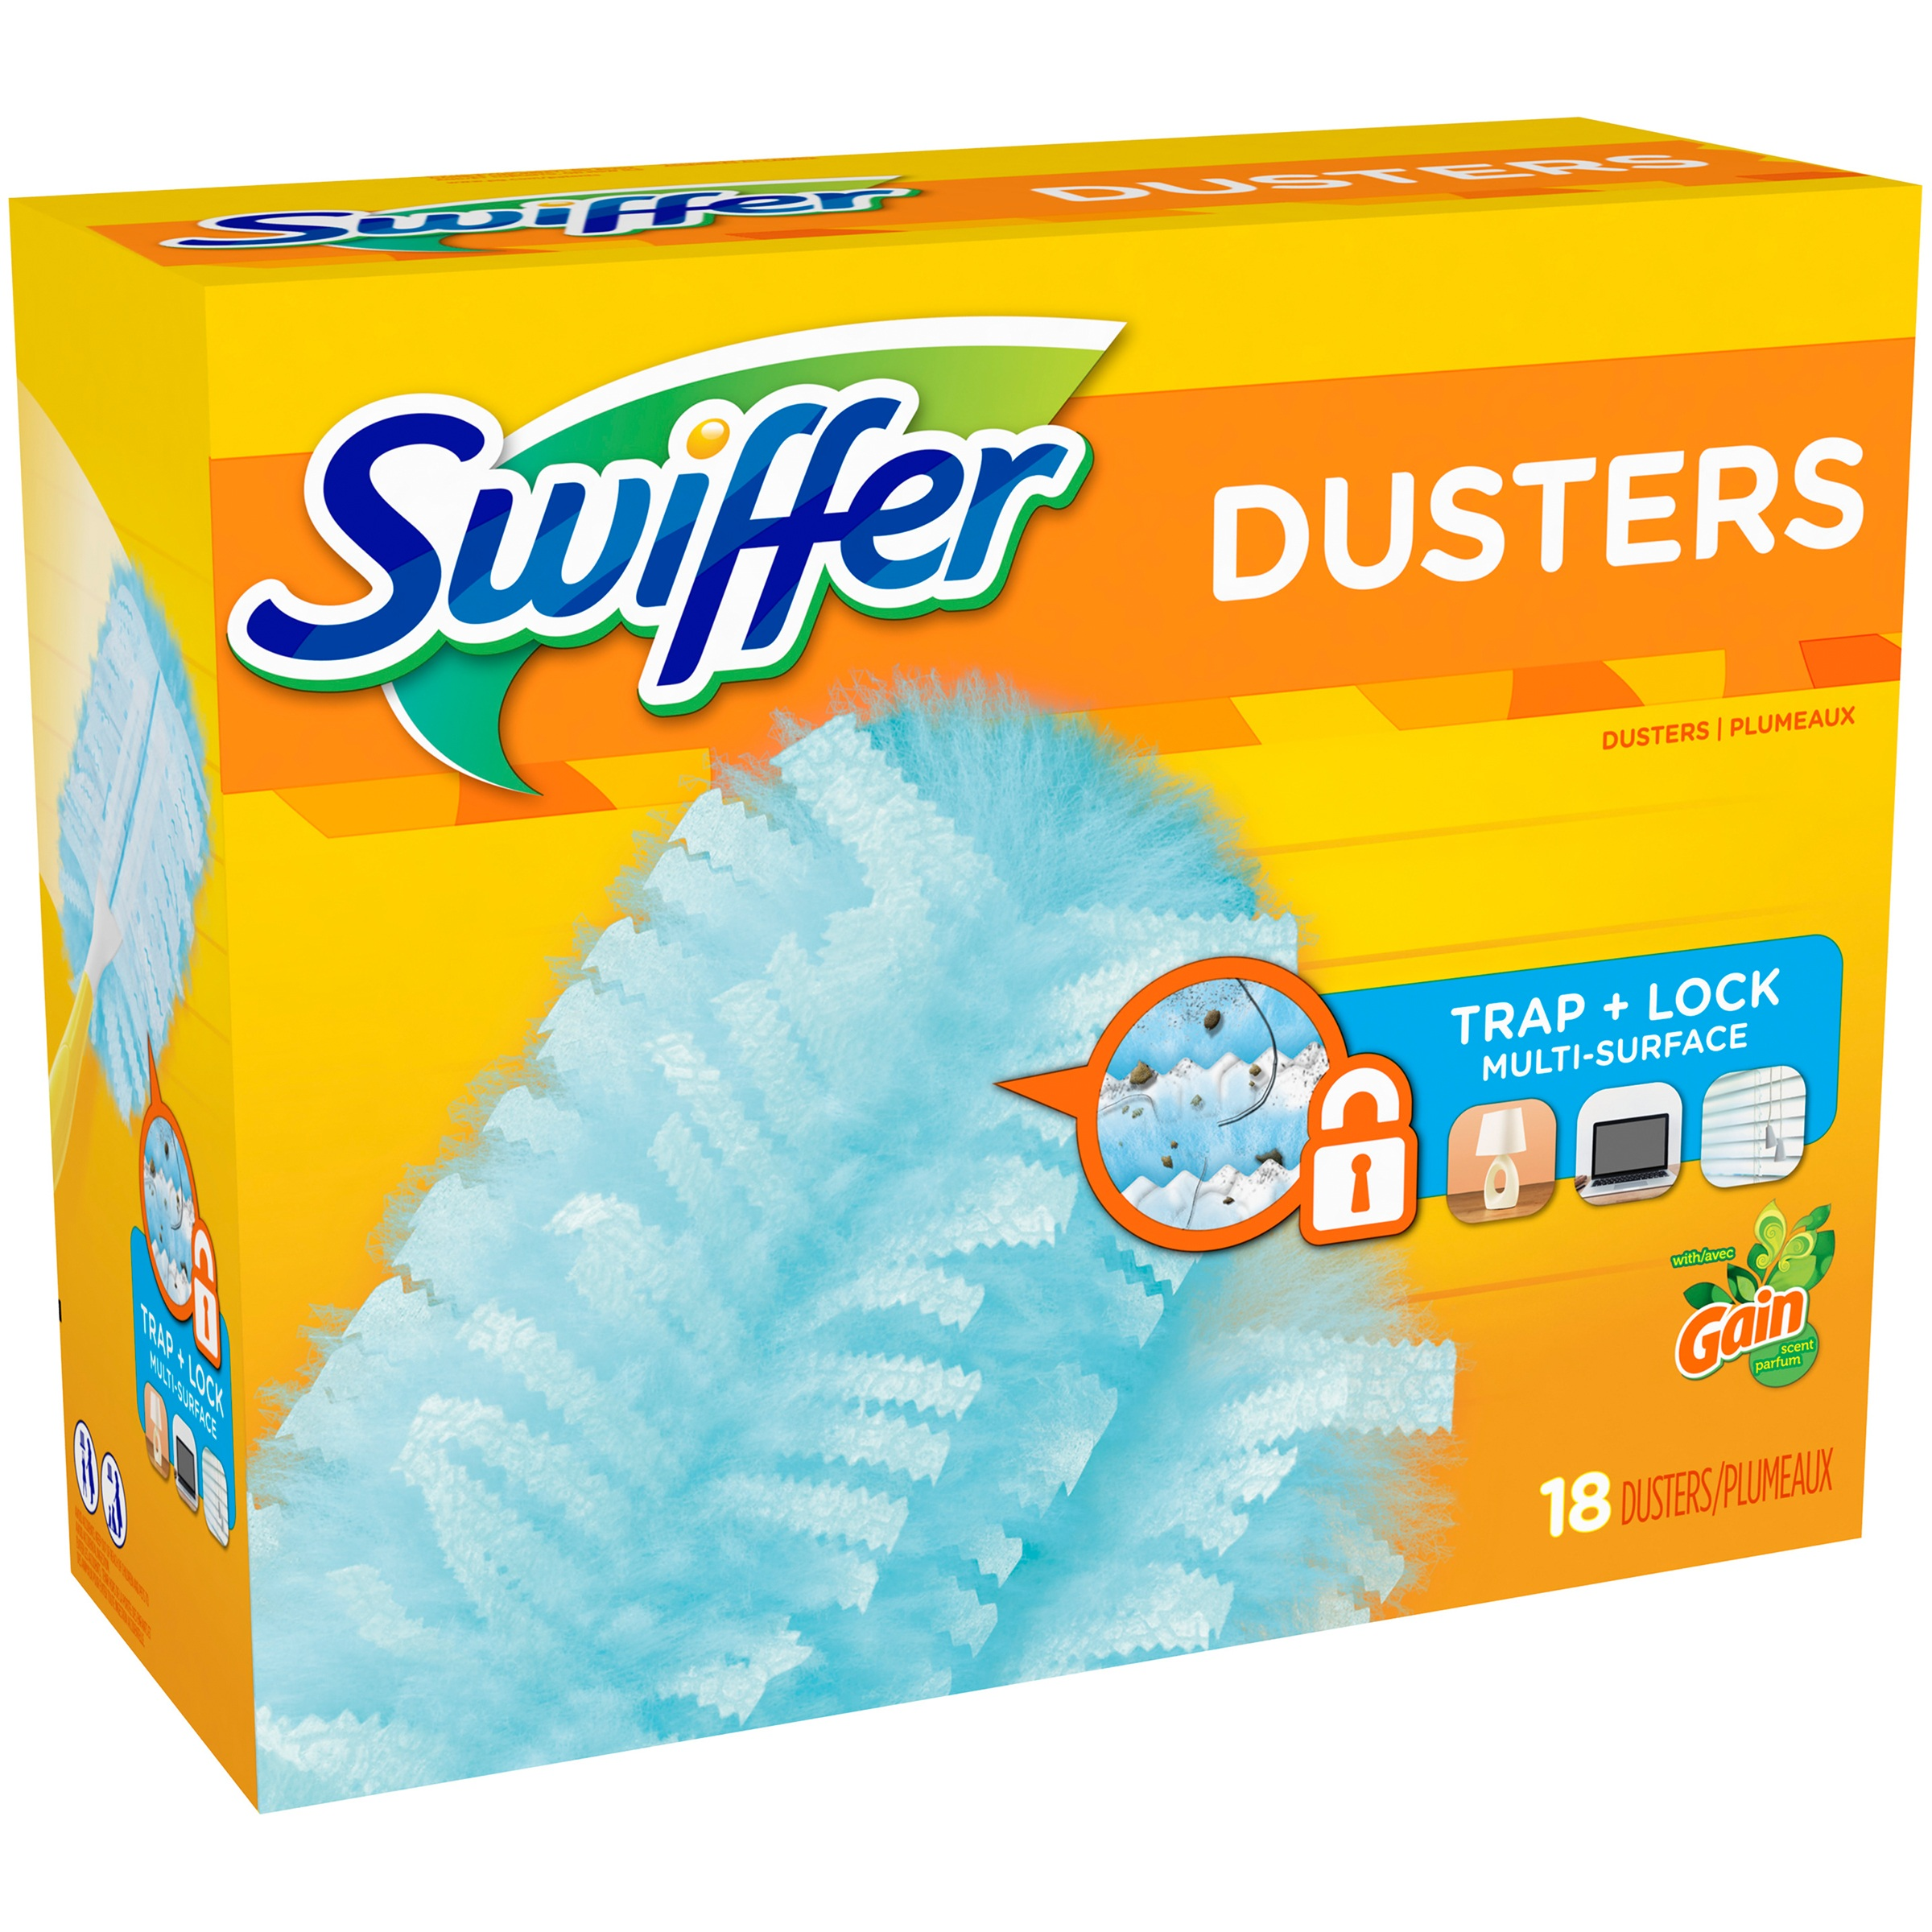 Swiffer with Gain Scent Dusters 18 ct Box